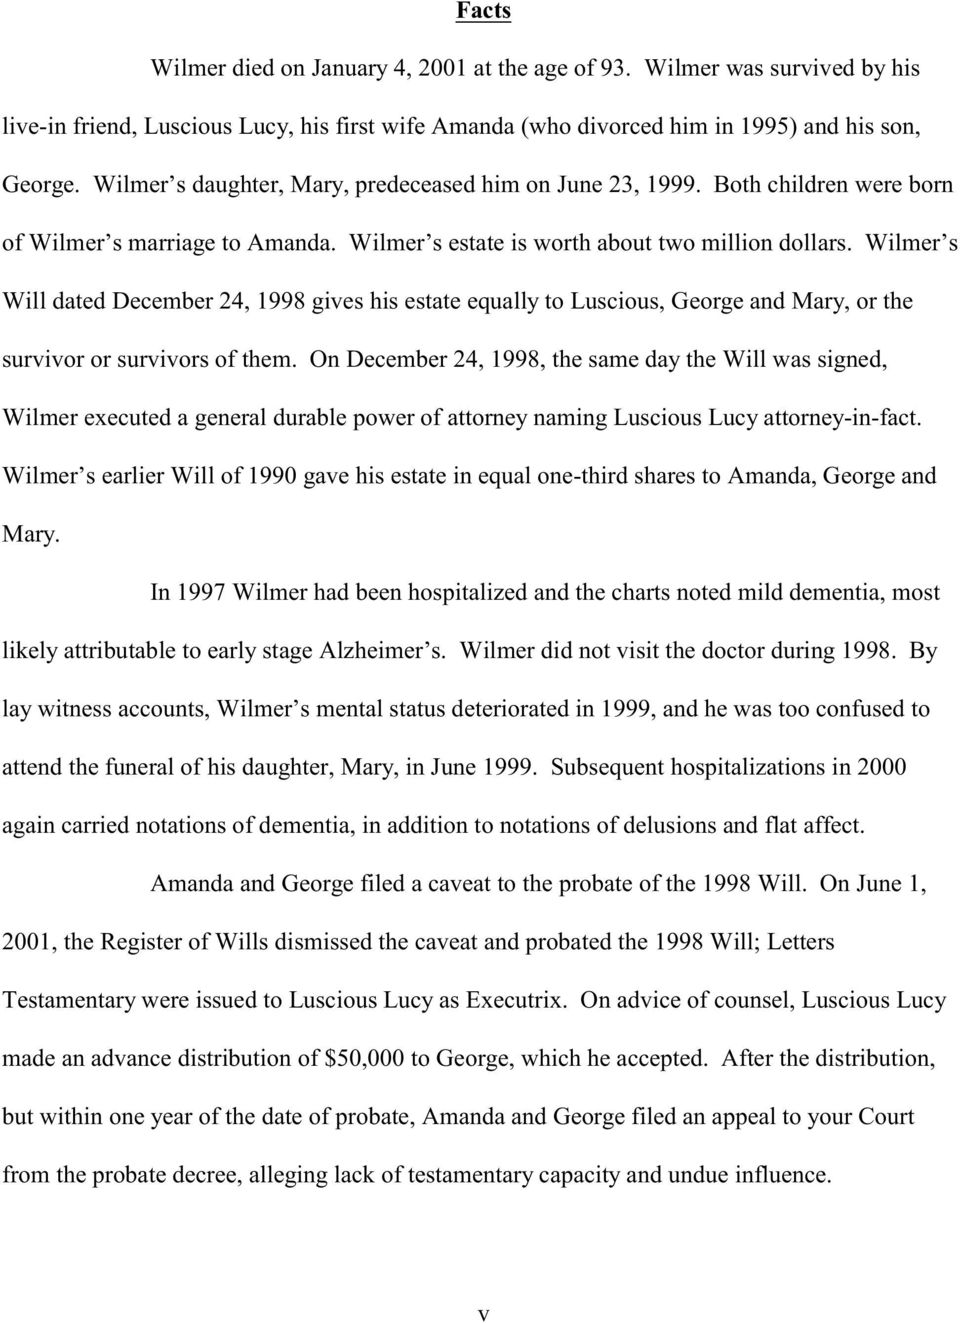 Wilmer s Will dated December 24, 1998 gives his estate equally to Luscious, George and Mary, or the survivor or survivors of them.